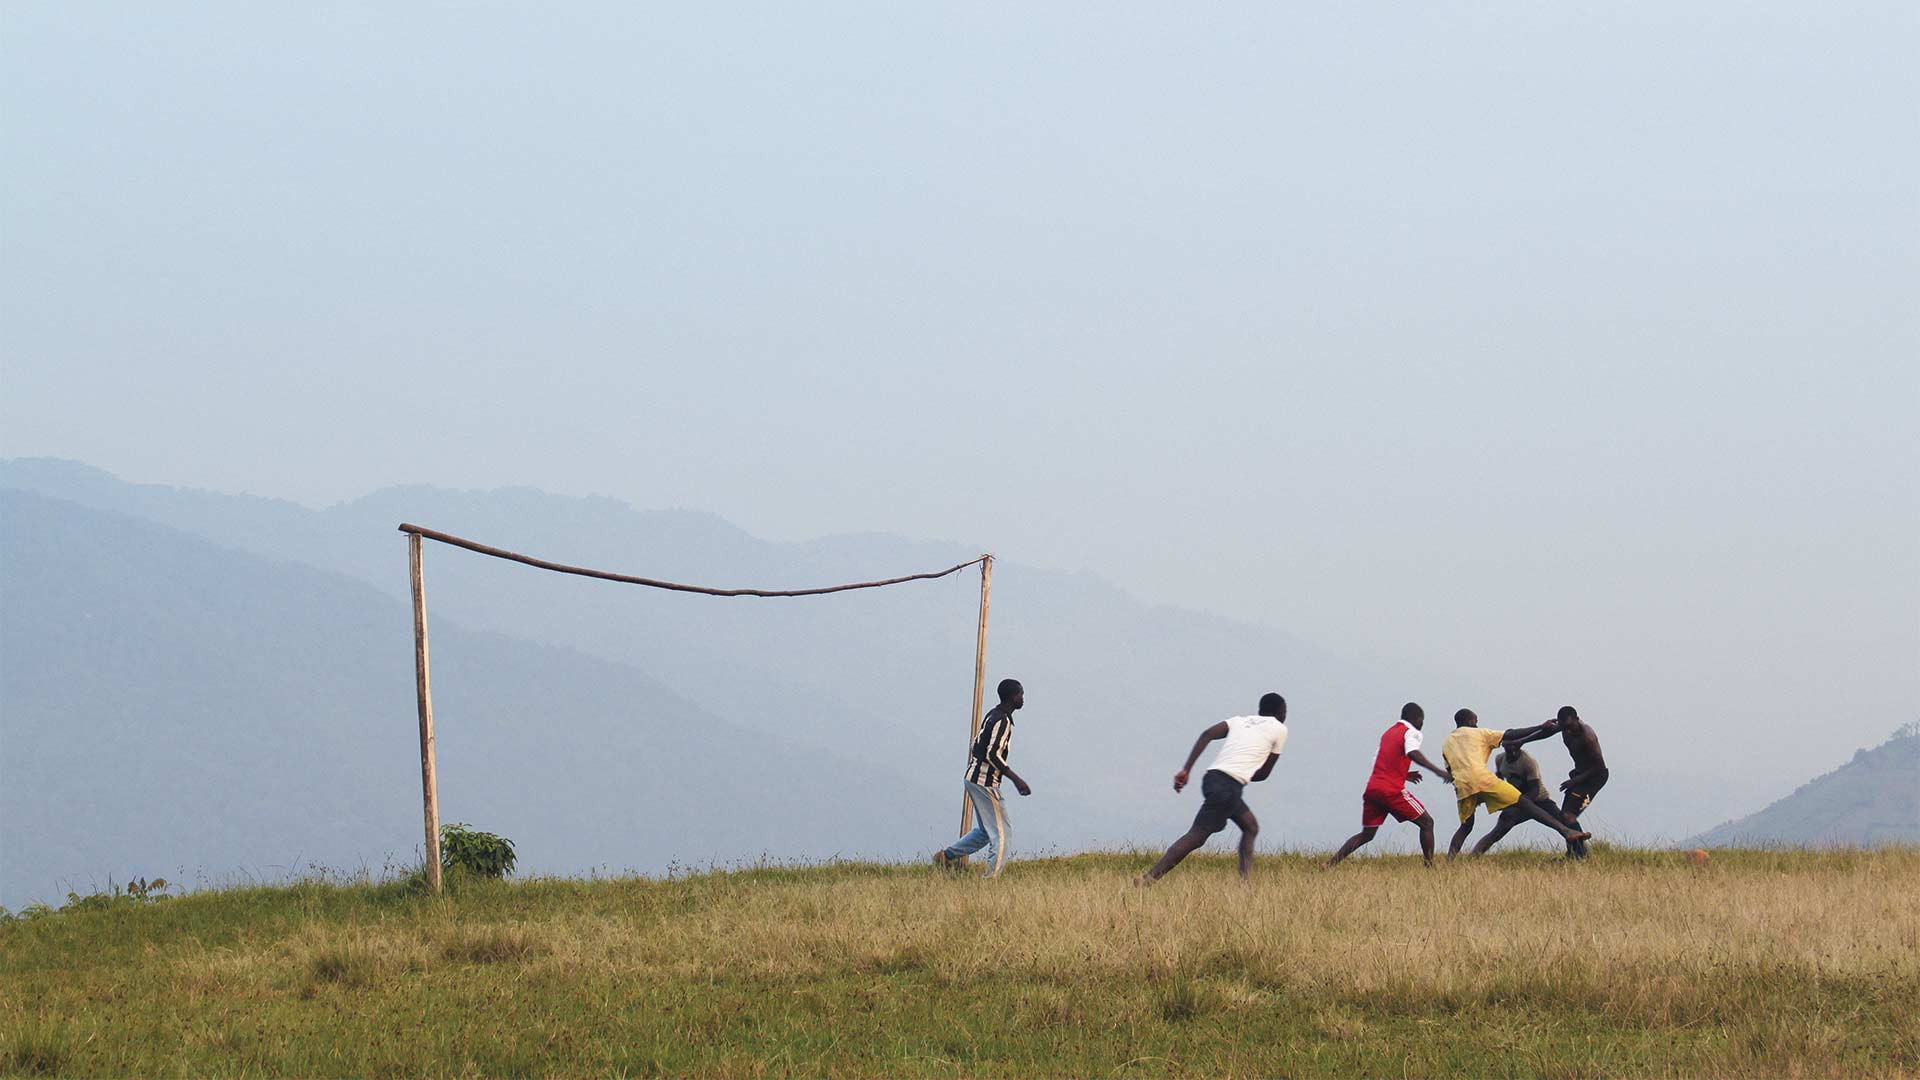 Playing football on the edge of Bwindi Impenetrable Forest, Uganda